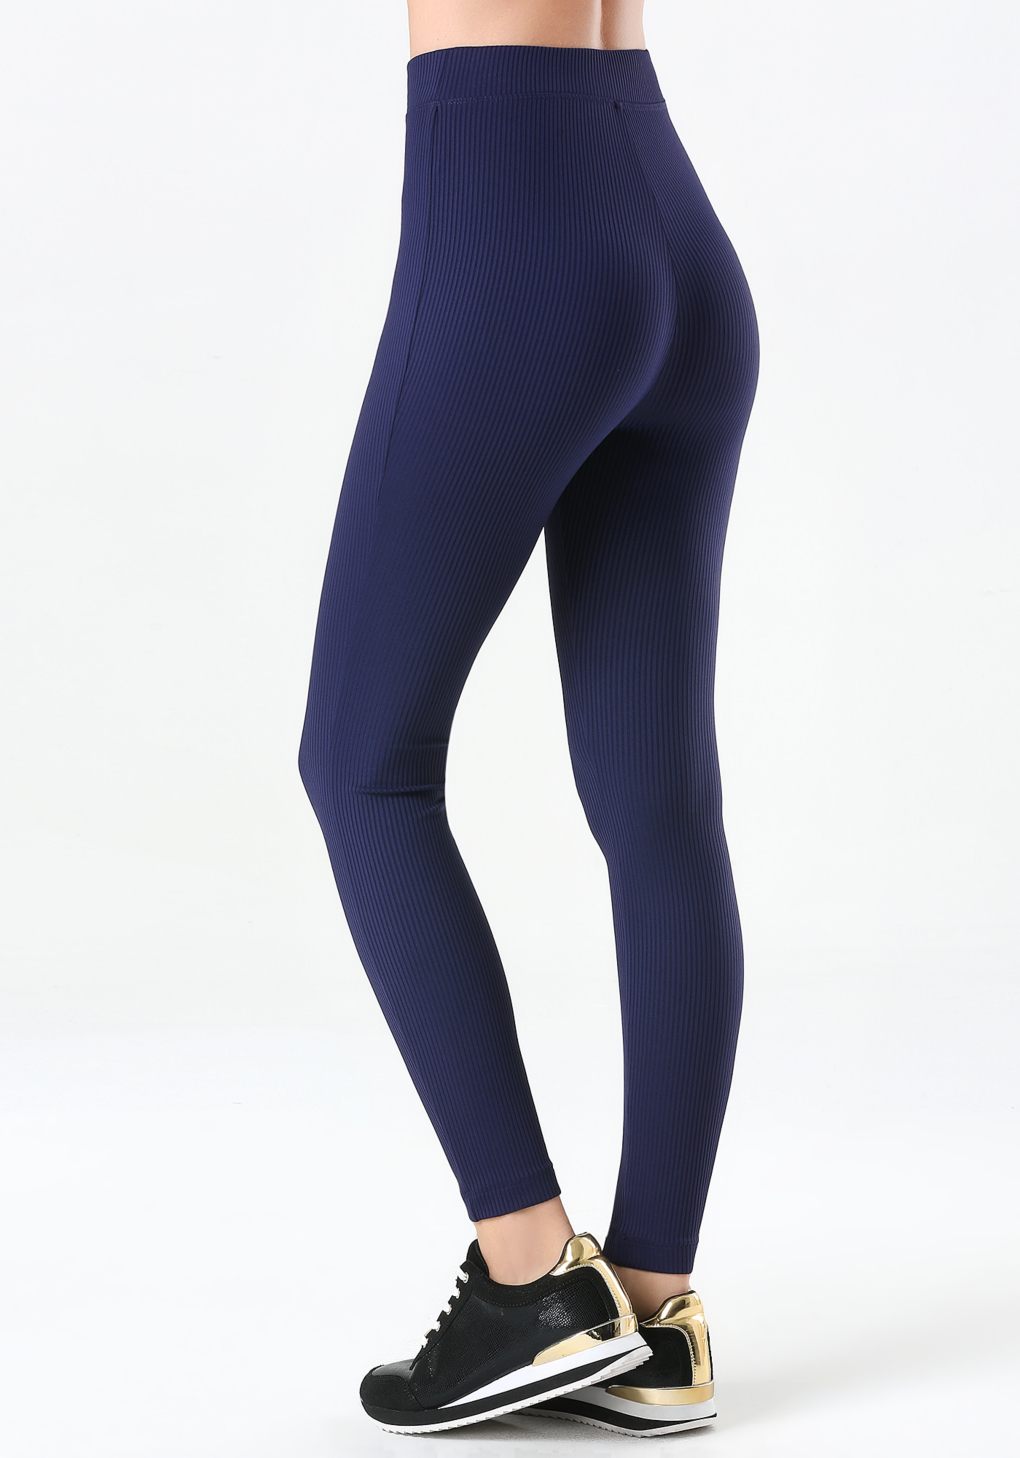 d23a41afd4acf8 Bebe Ribbed High Waist Leggings in Blue - Lyst